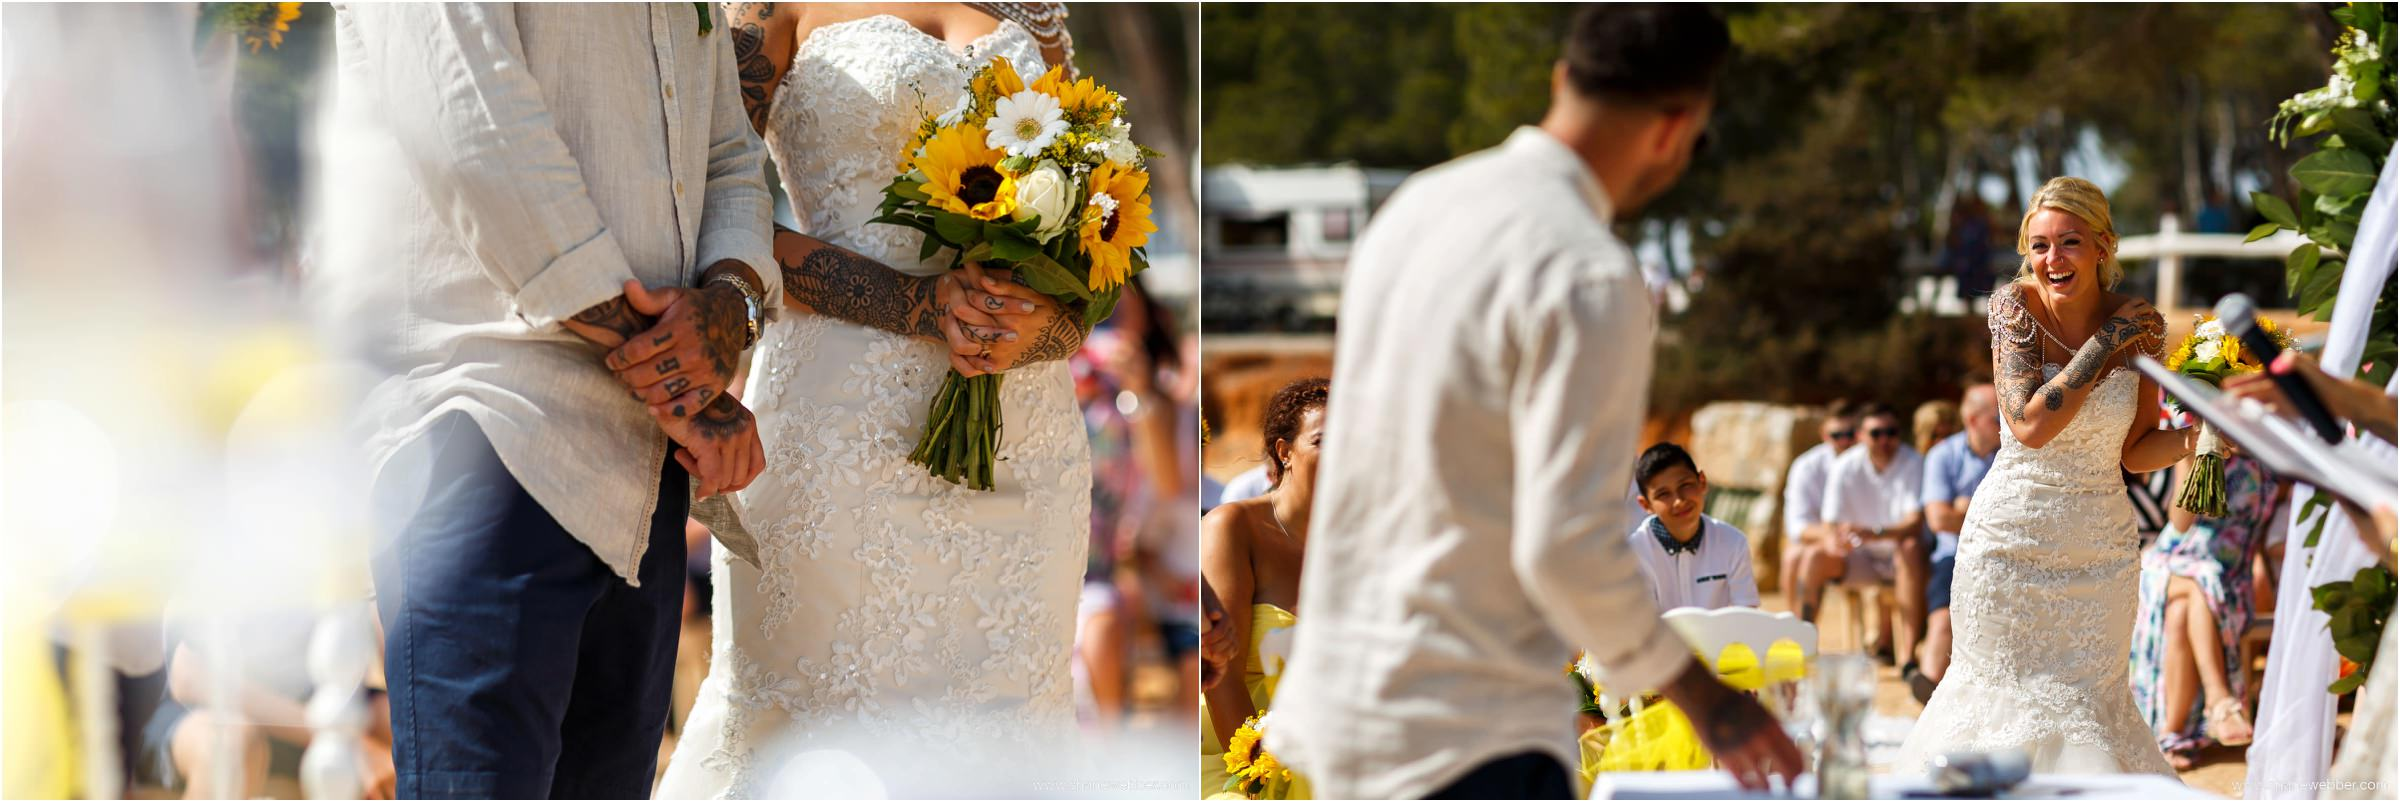 Sunflower bouquet at colourful summer wedding